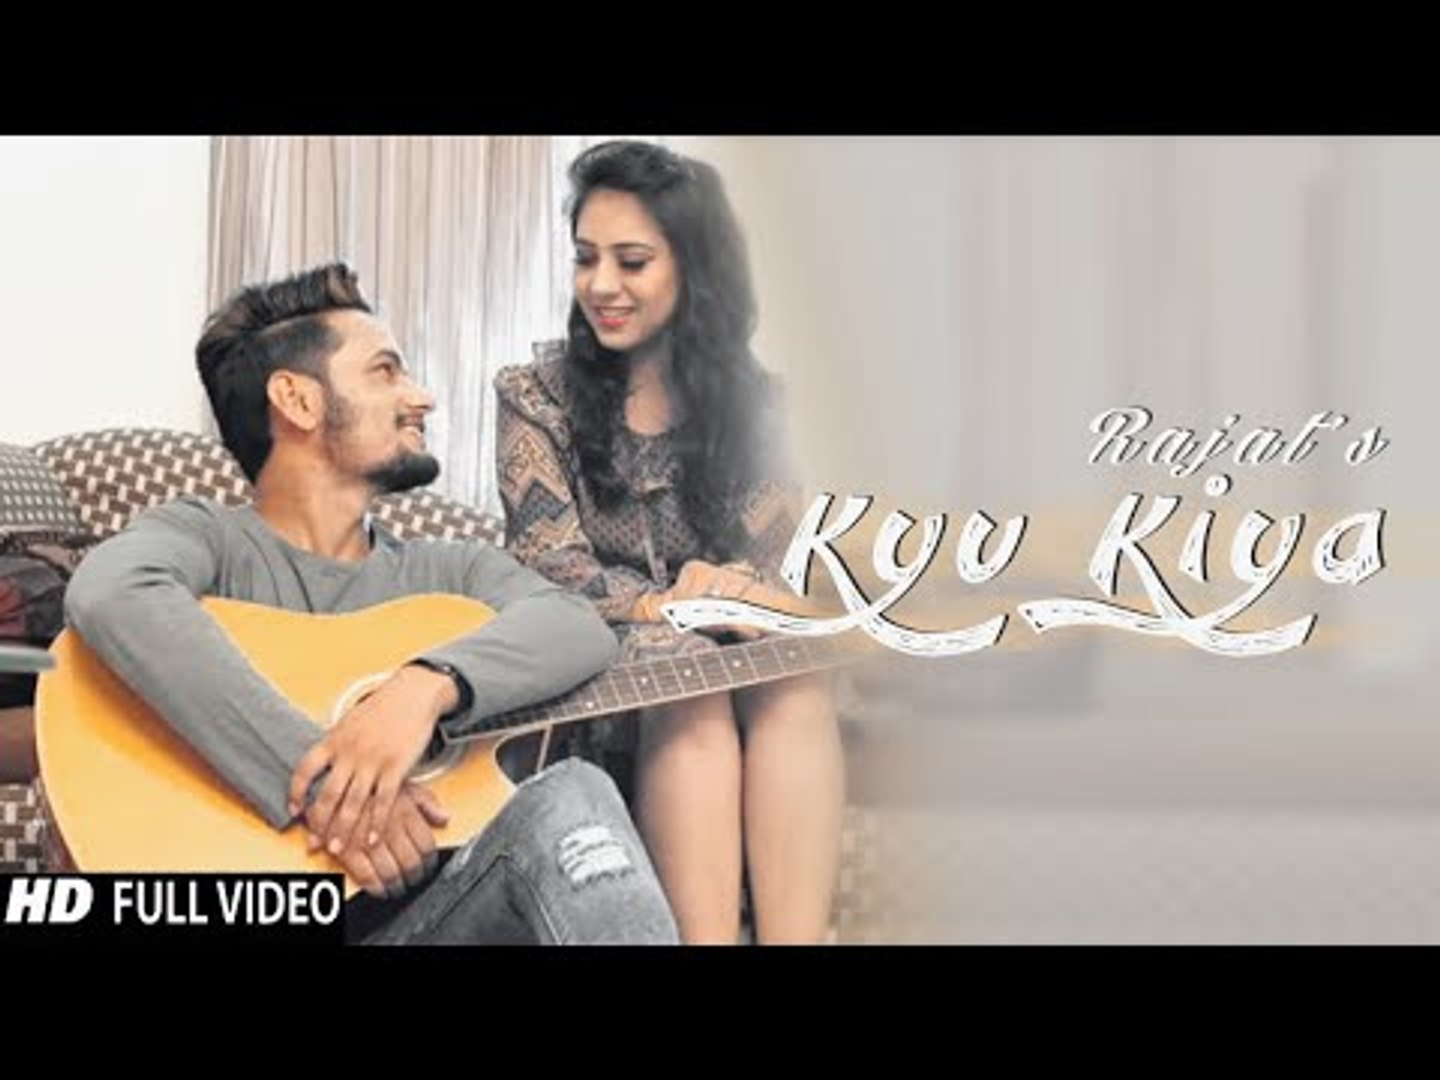 Kyu Kiya | (Full HD) | Rajat Azad | New Hindi Songs 2018 | Latest Hindi Songs 2018